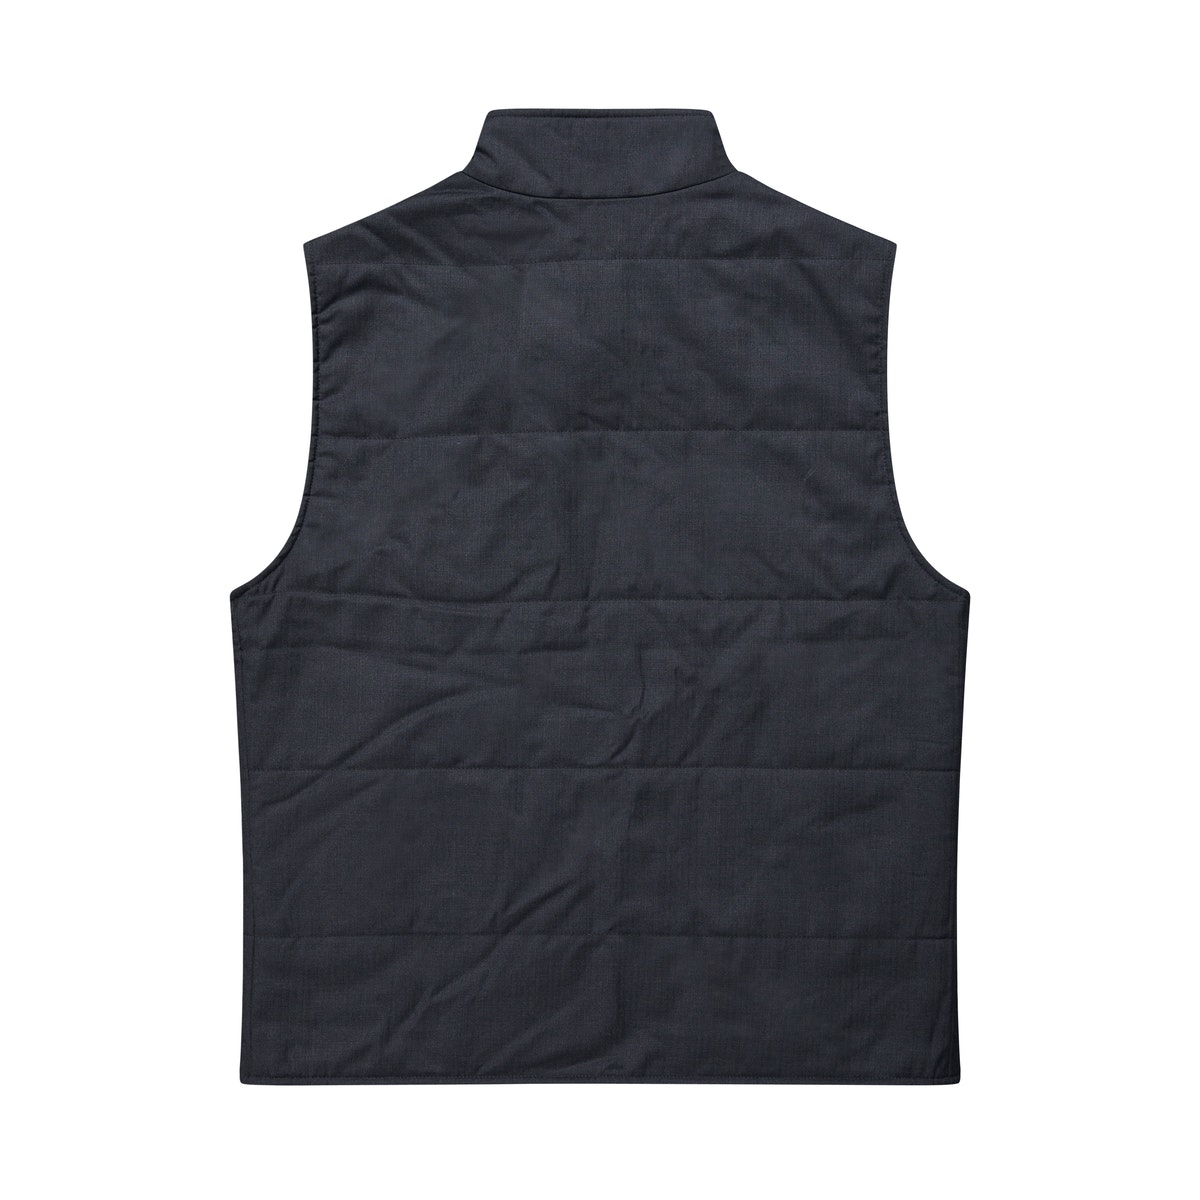 The Watergate Reversible Charcoal Vest